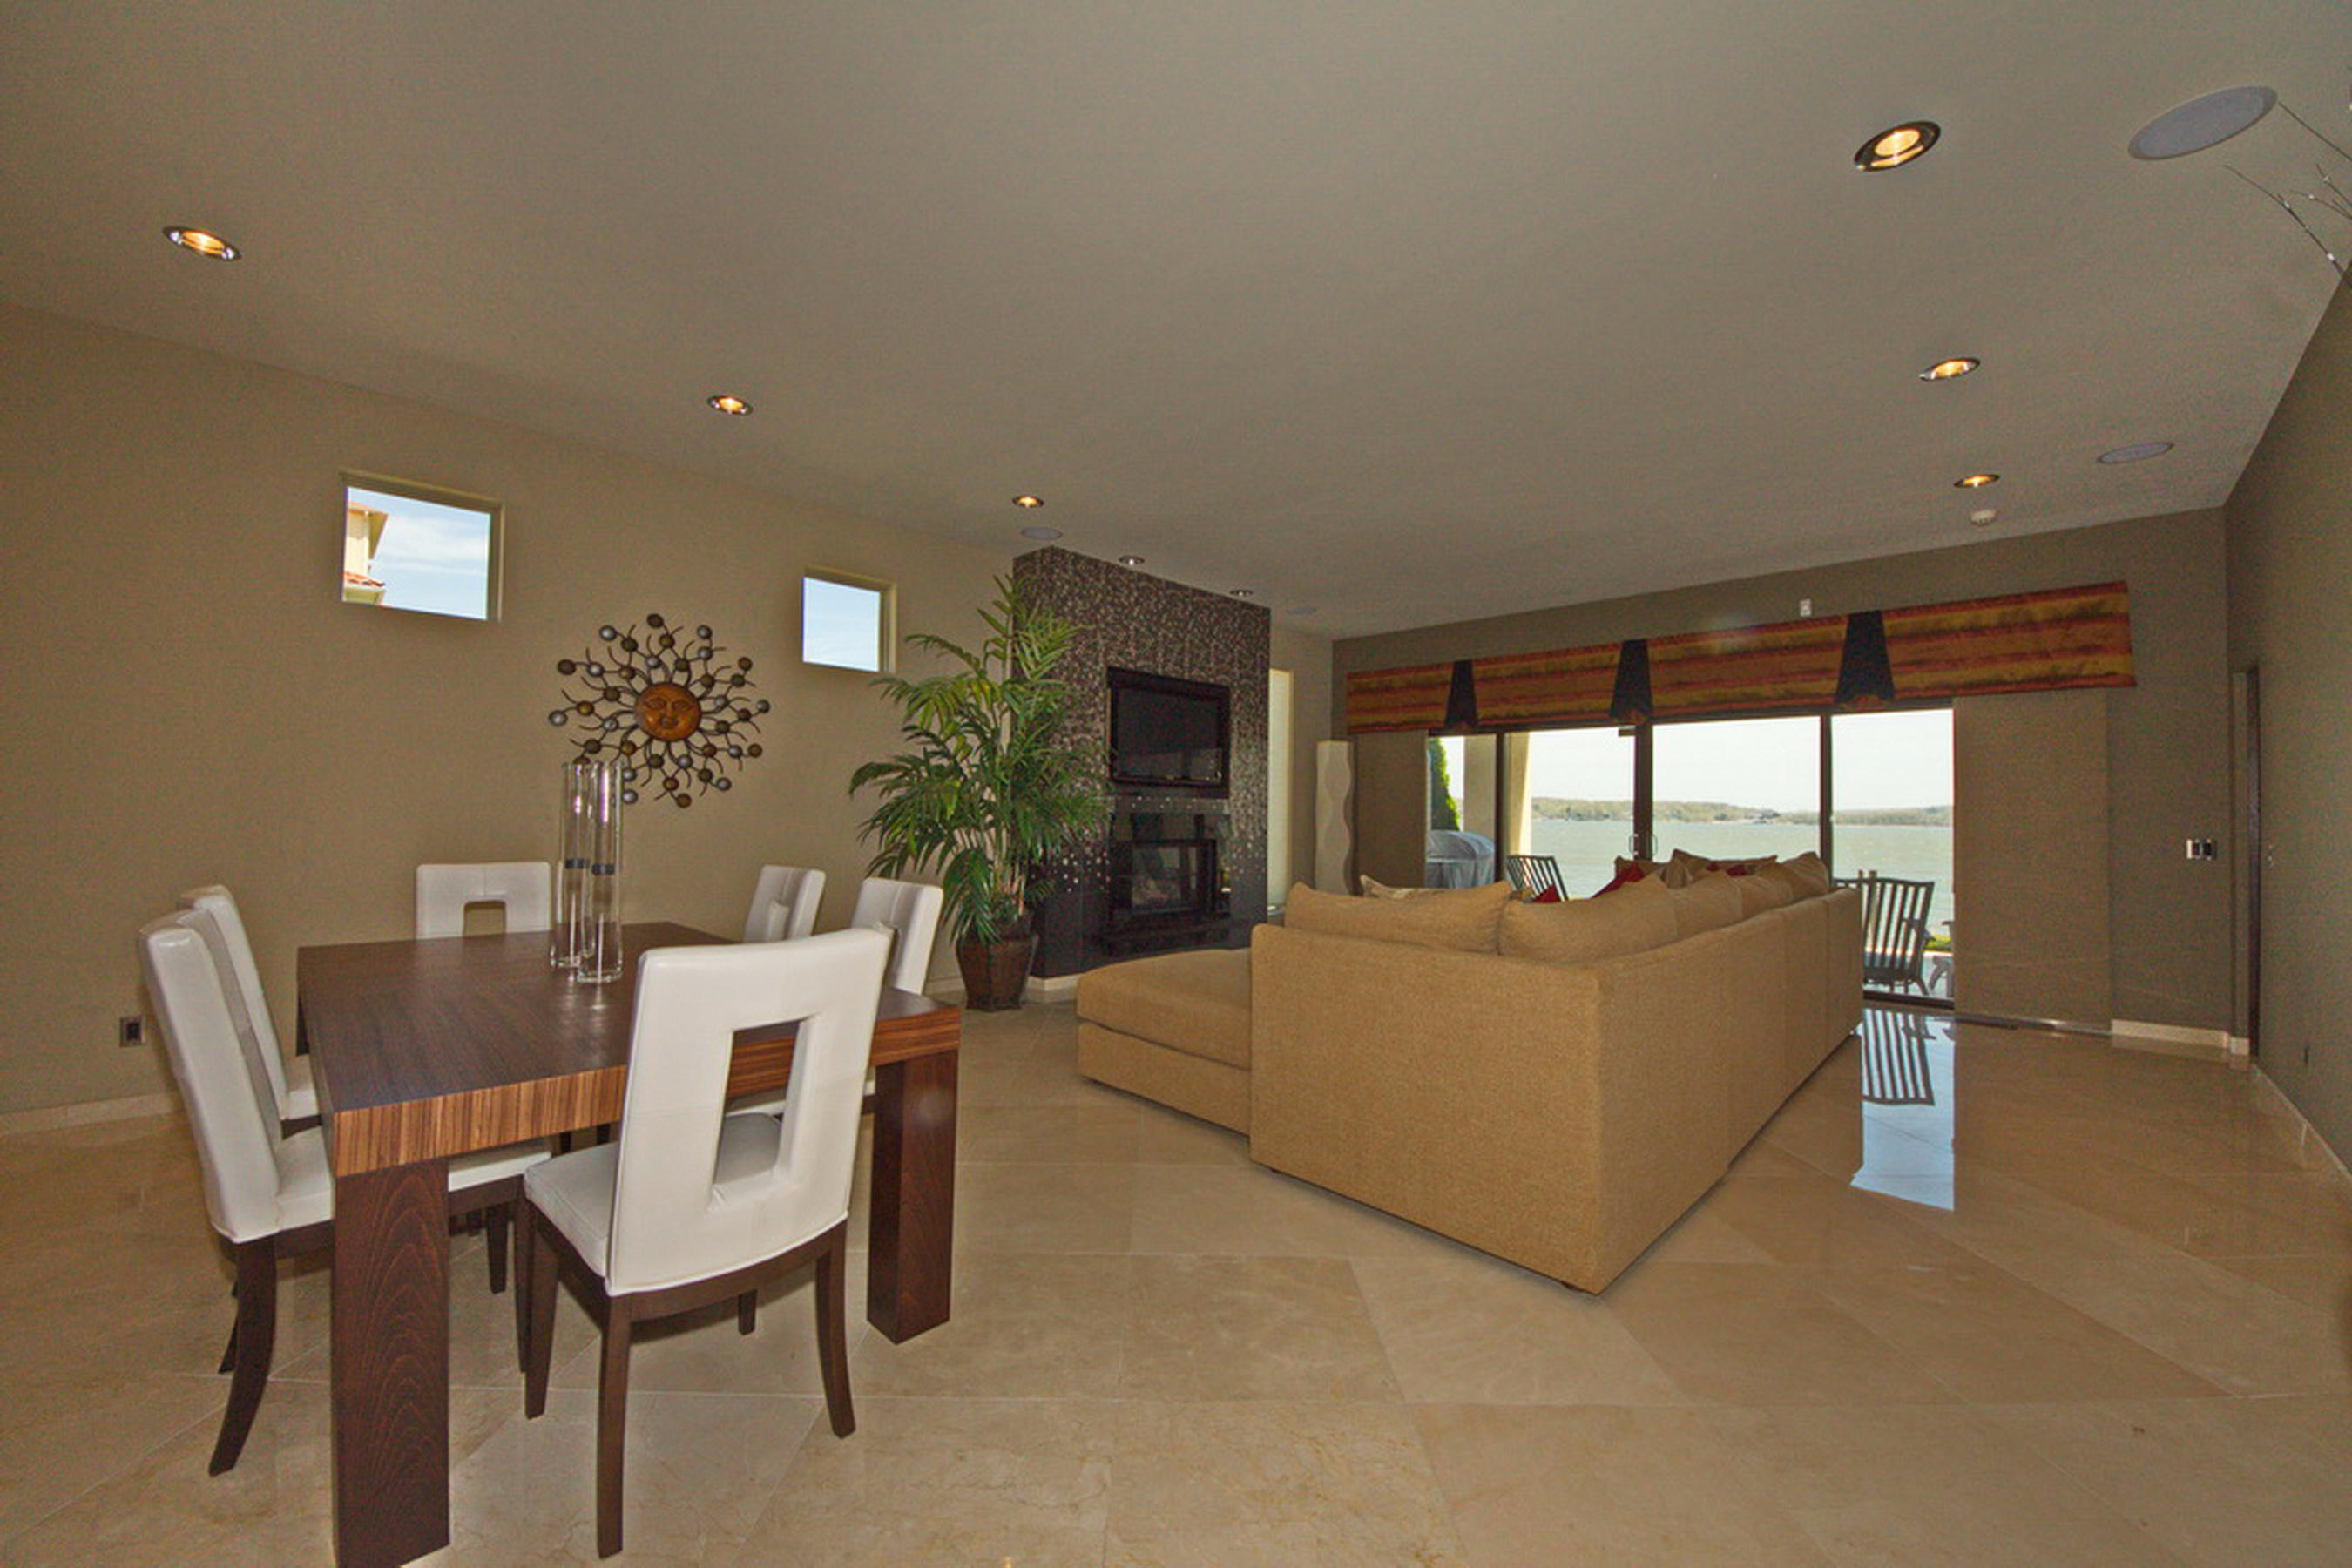 23-Ll Dining-Living-Fire Place-View